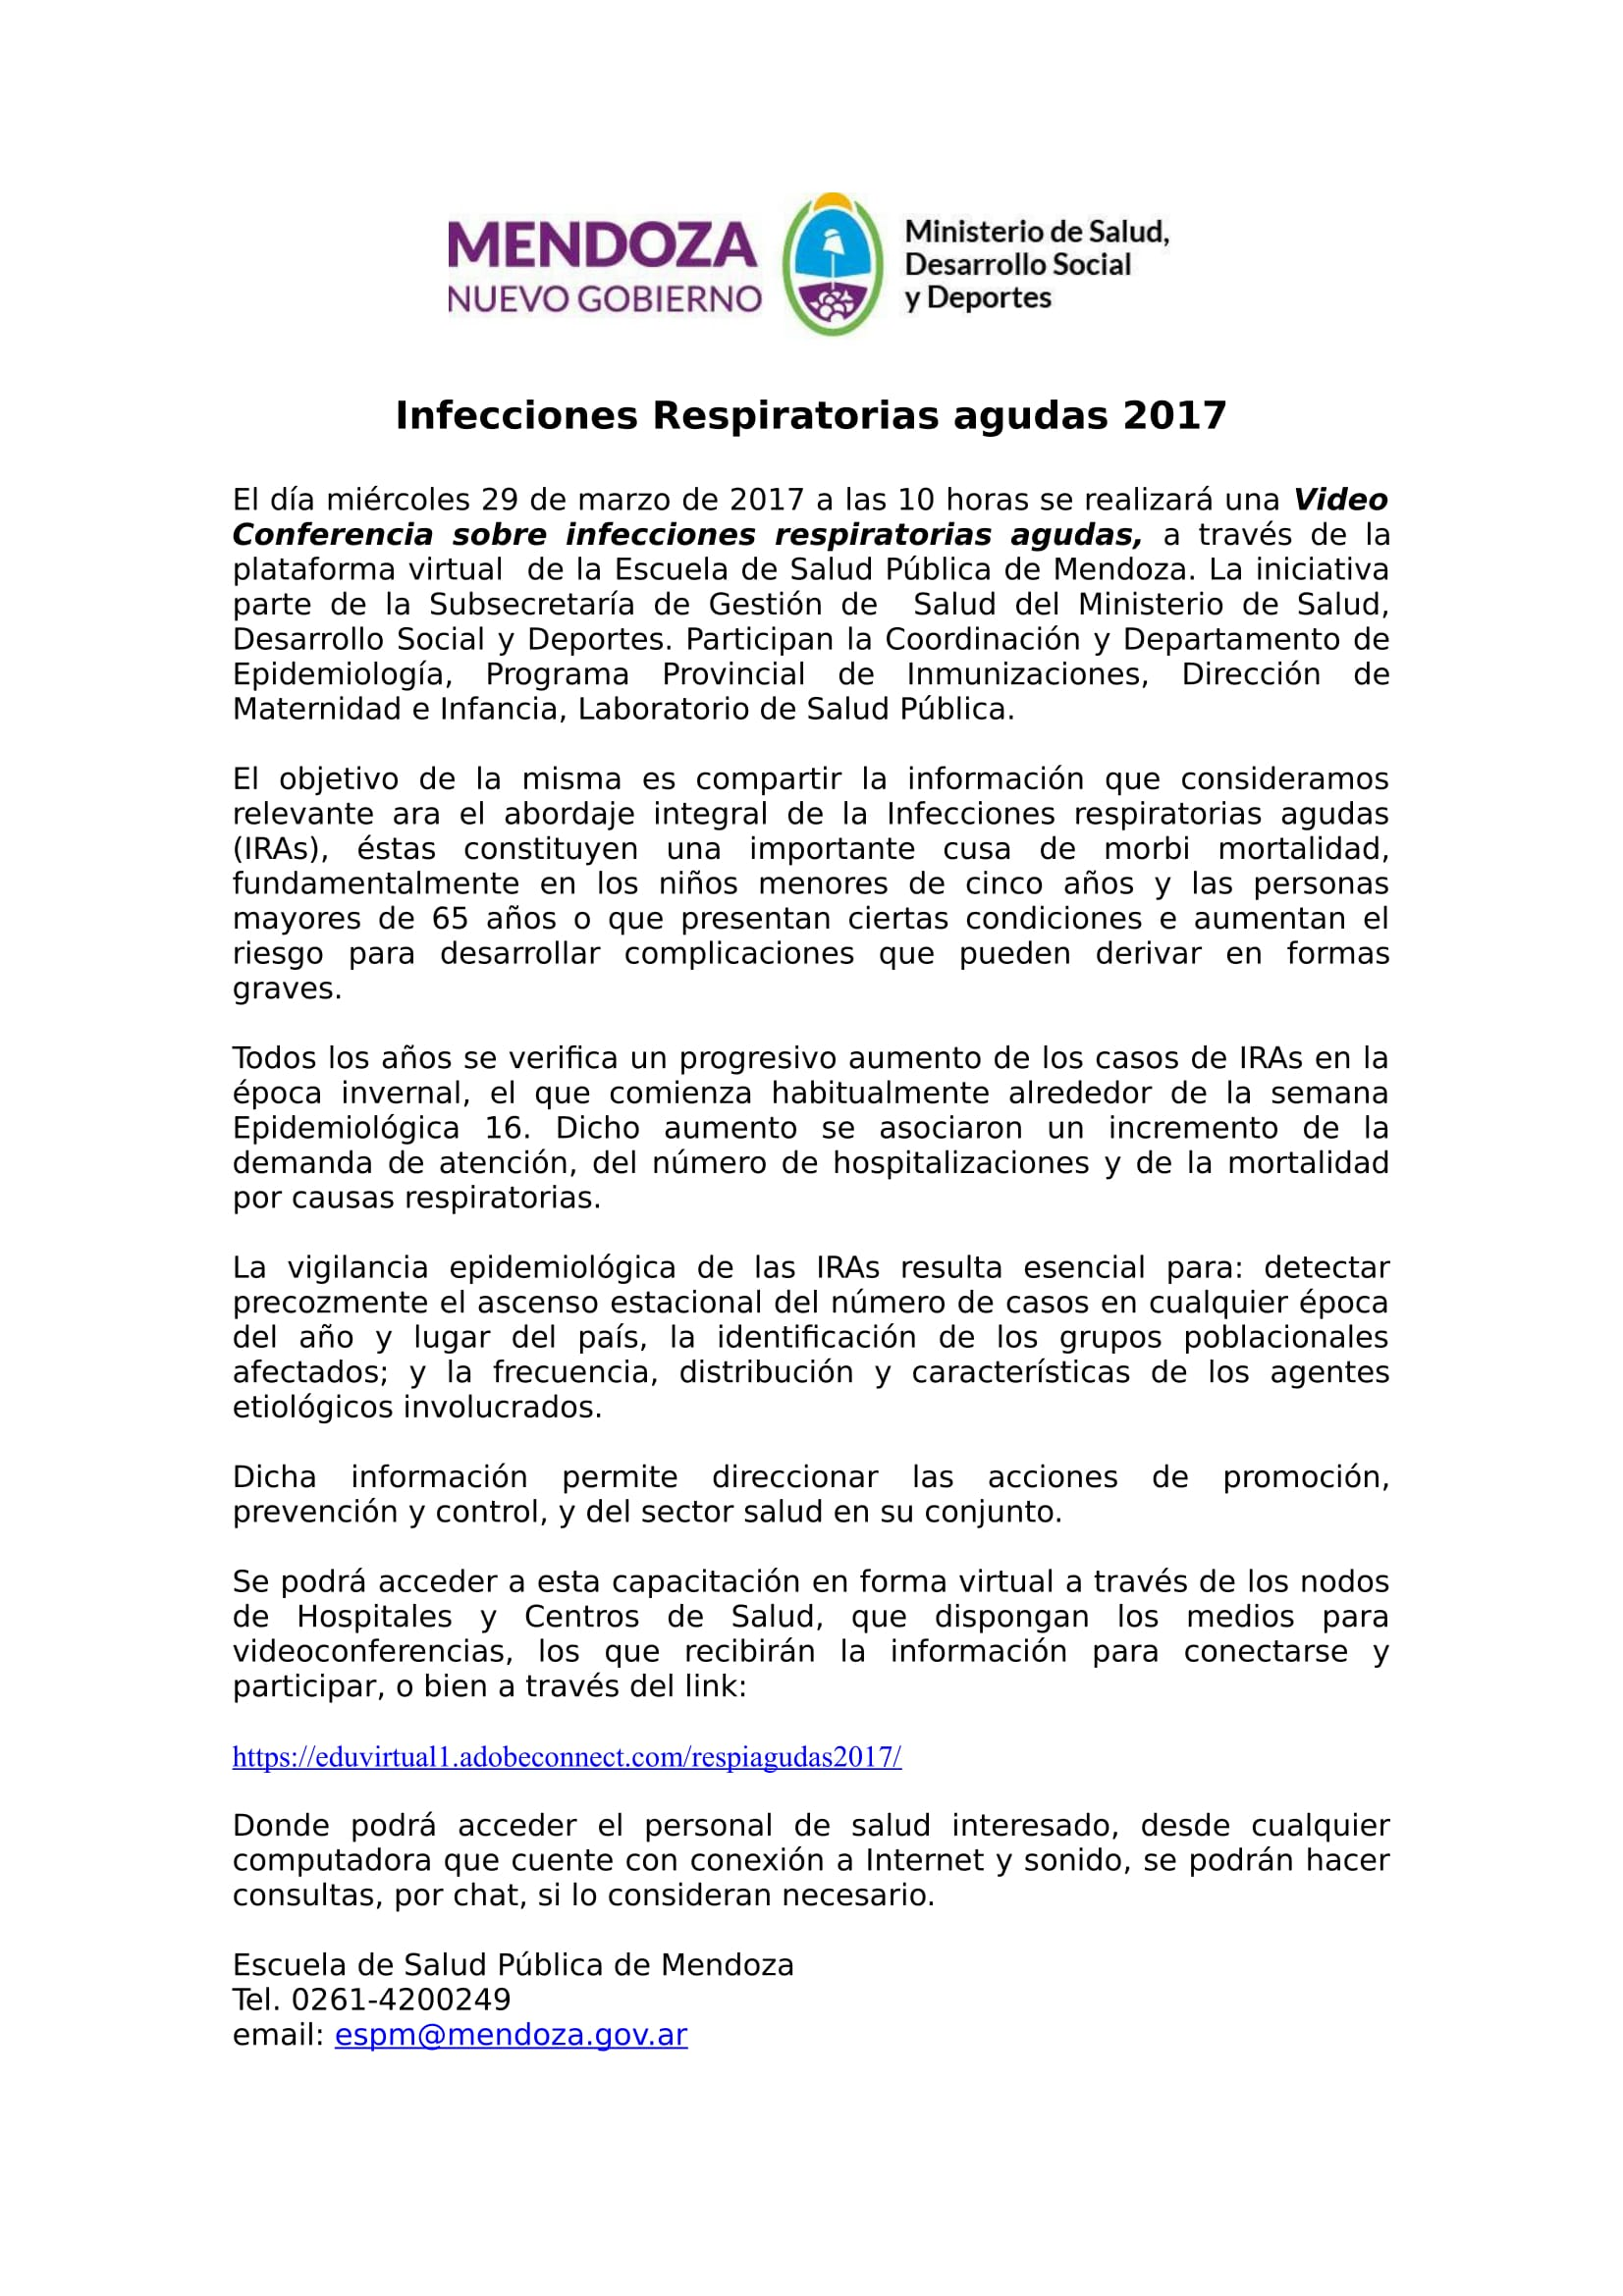 Video Conferencia Infecciones Respiratorias agudas 2017-B-2-1